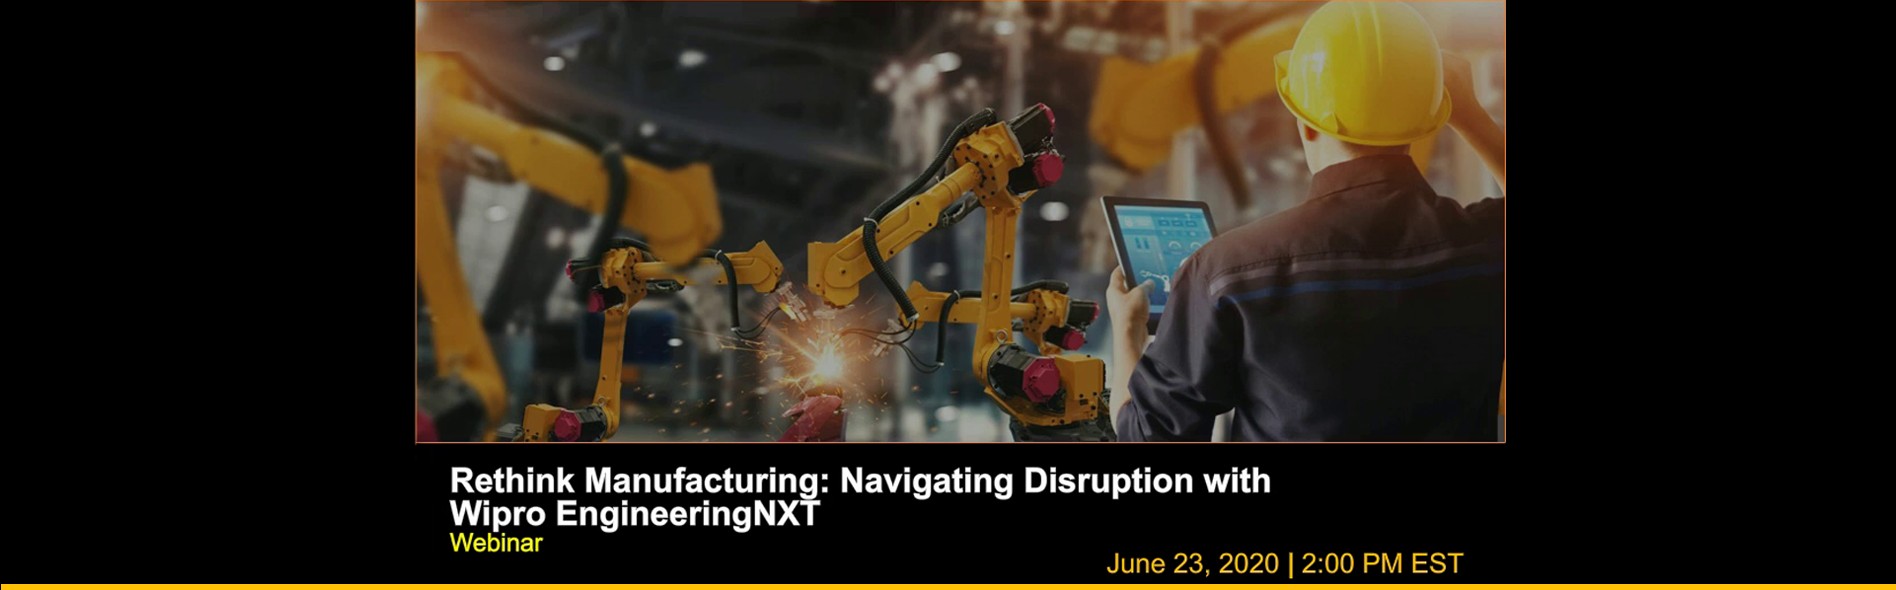 webinar: Rethink Manufacturing: Navigating Disruption with Wipro EngineeringNXT